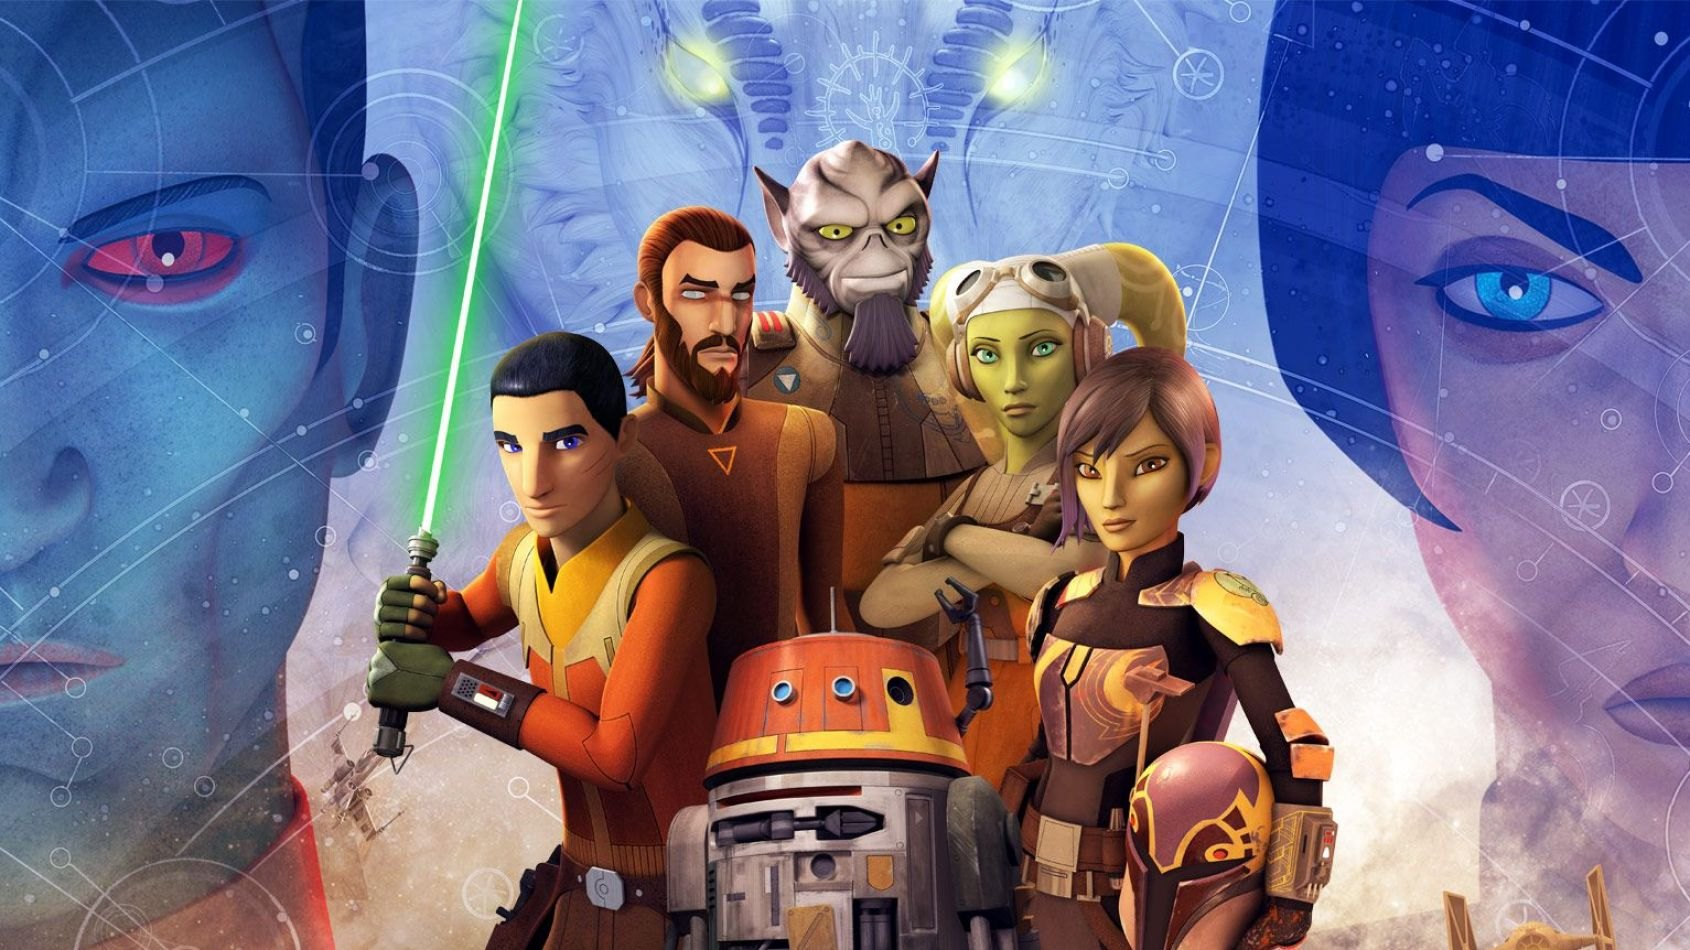 Preview pour l'épisode 10 de la saison 4 de Star Wars Rebels